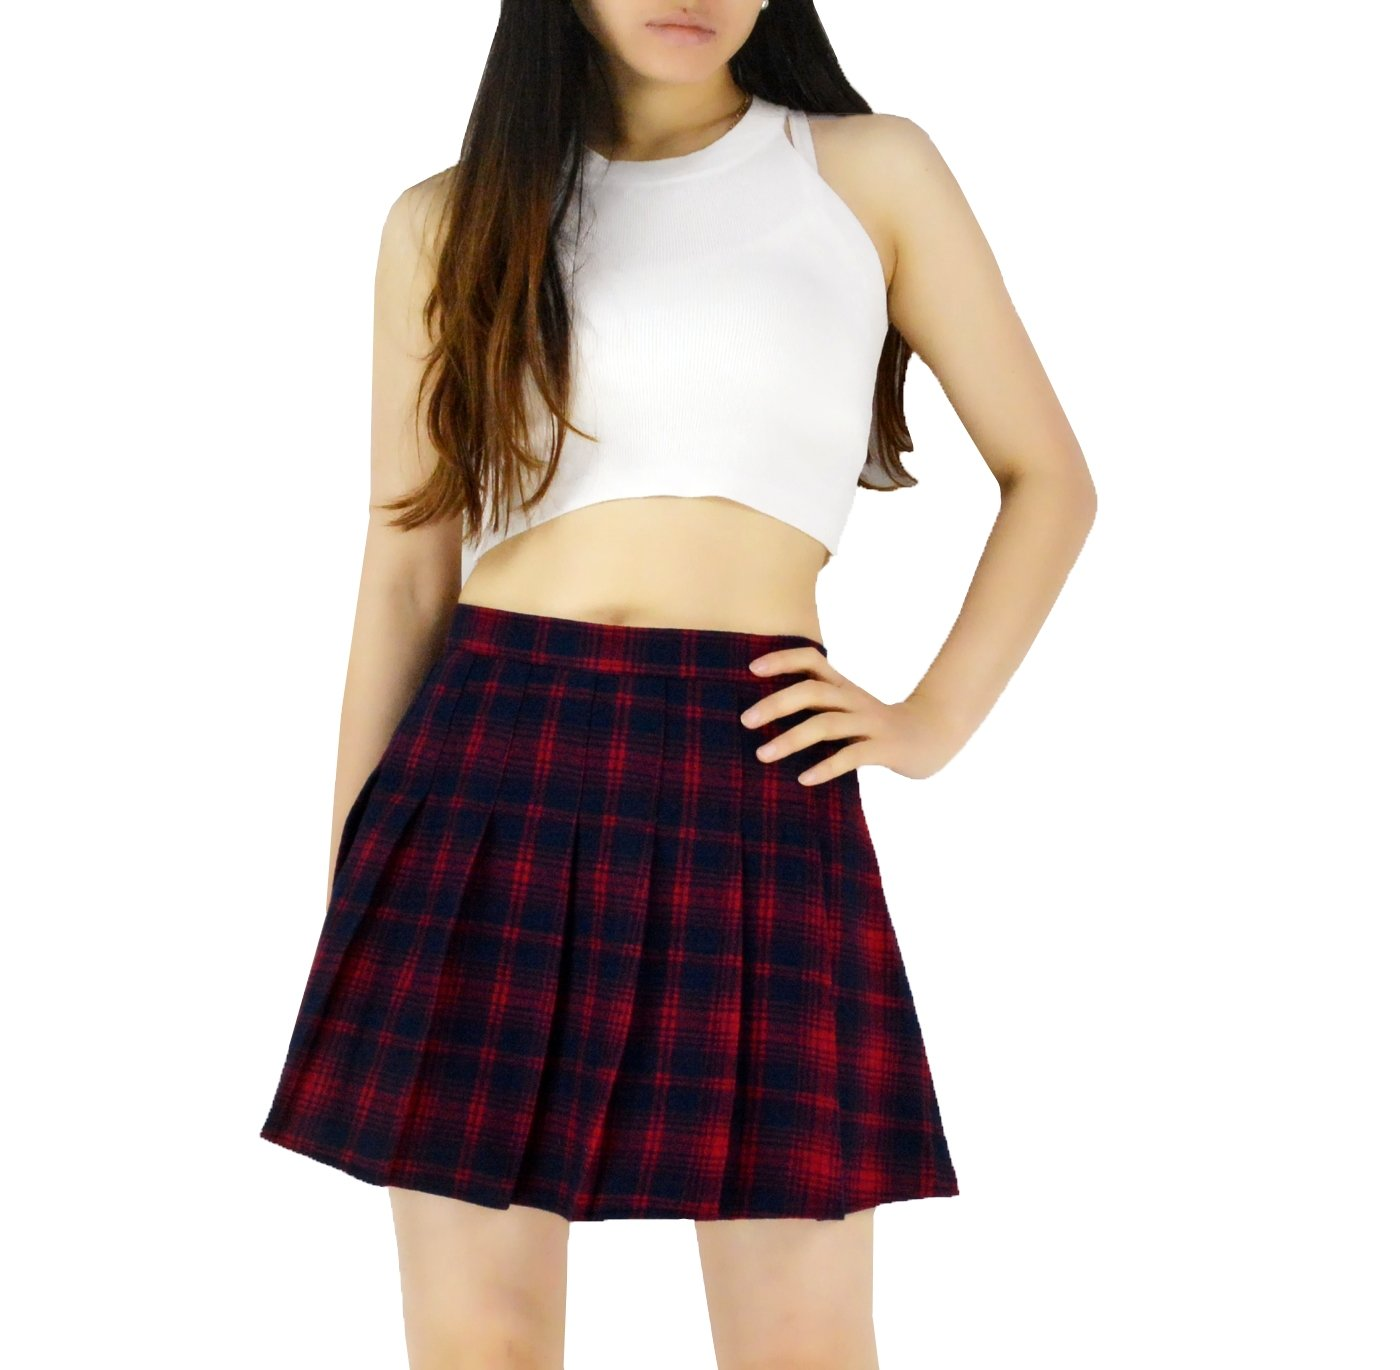 YSJERA Lady's Flared Check Plaid Pleated A-Line Short Mini Skater Skirts (S, Red)